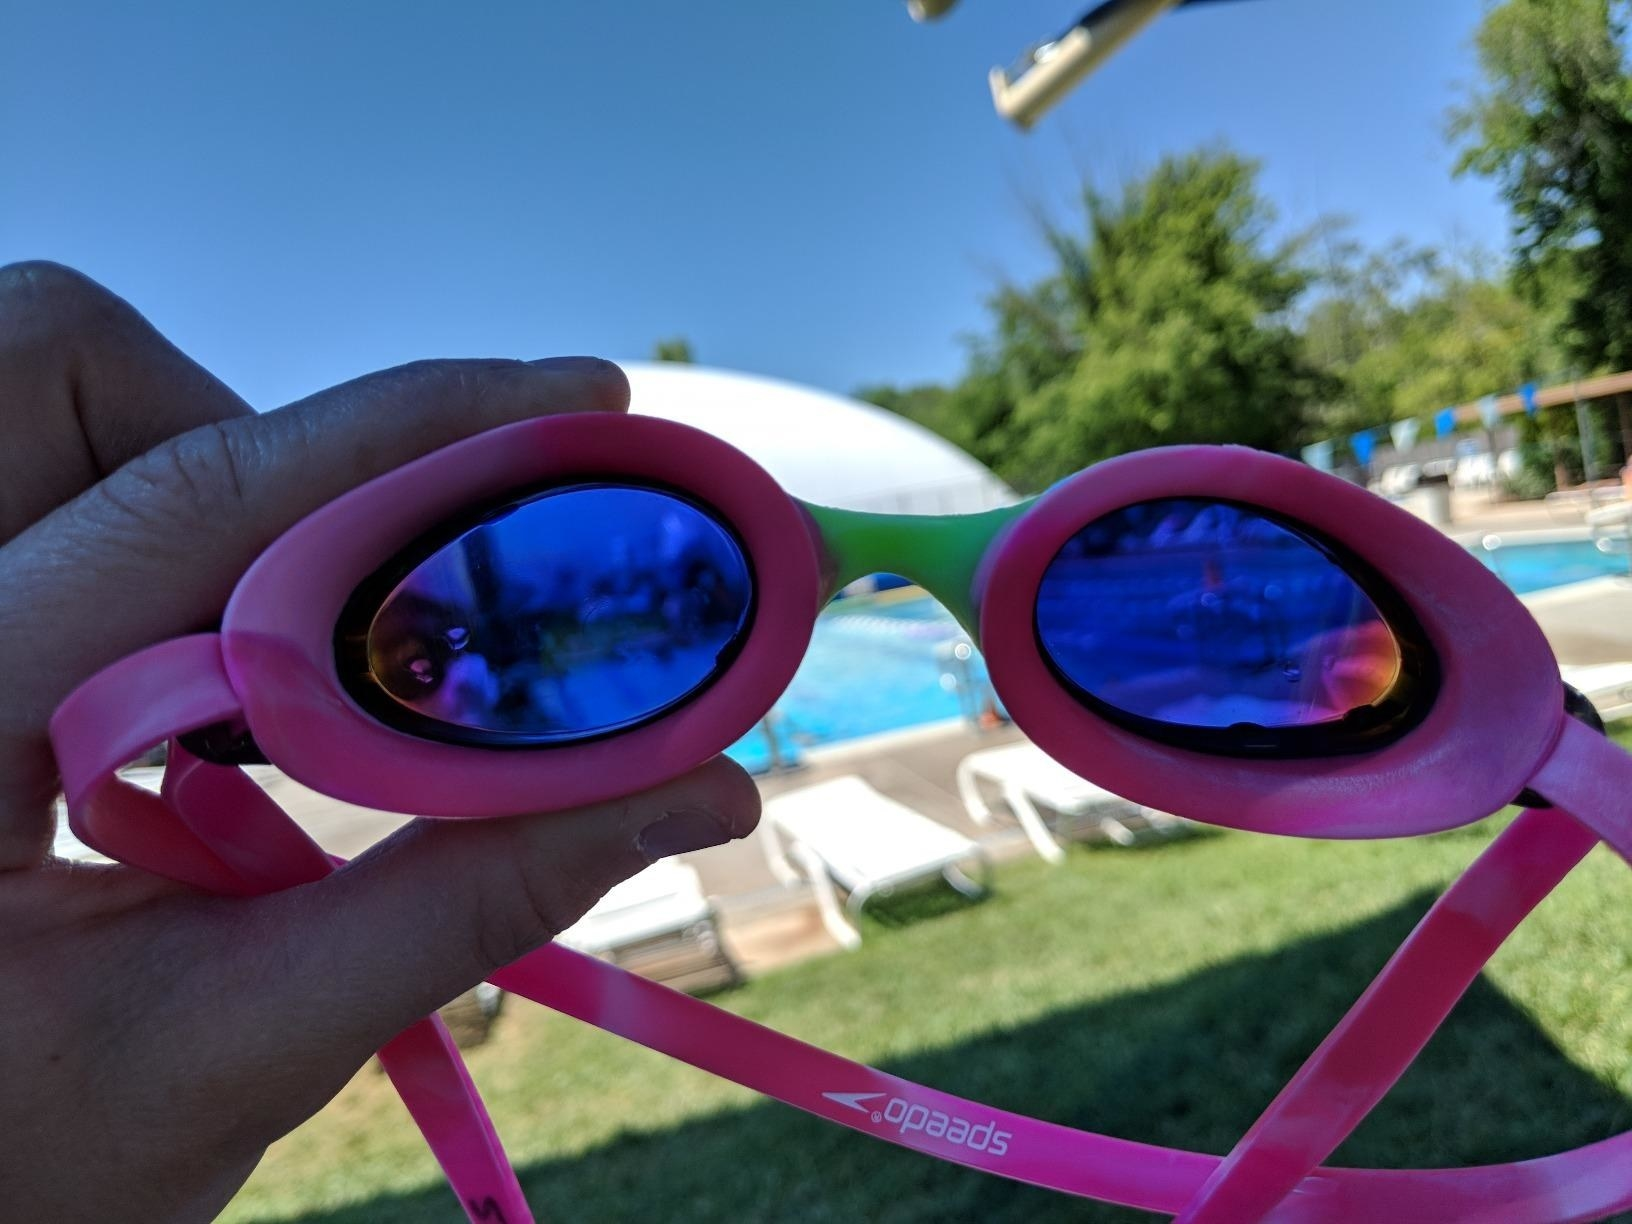 A reviewer demonstrates the tint on the pink goggles